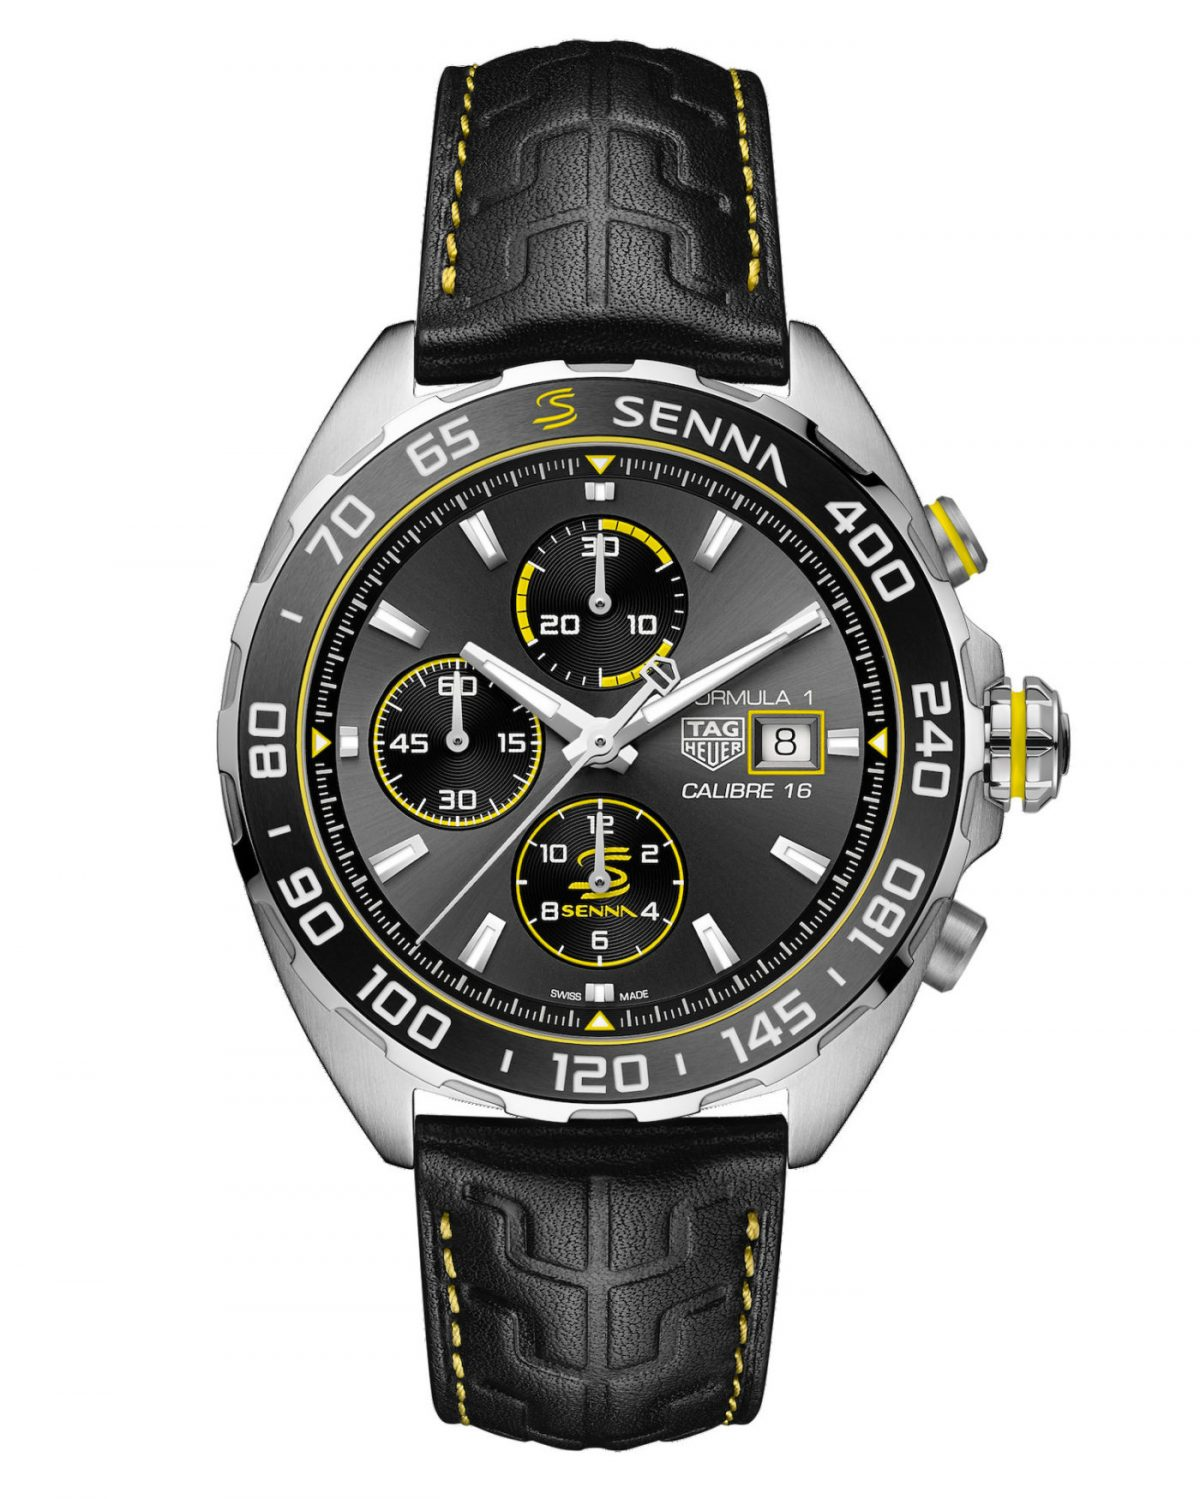 Inspired by Ayrton Senna TAG Heuer launches two new Ayrton Senna Formula 1 replica watches